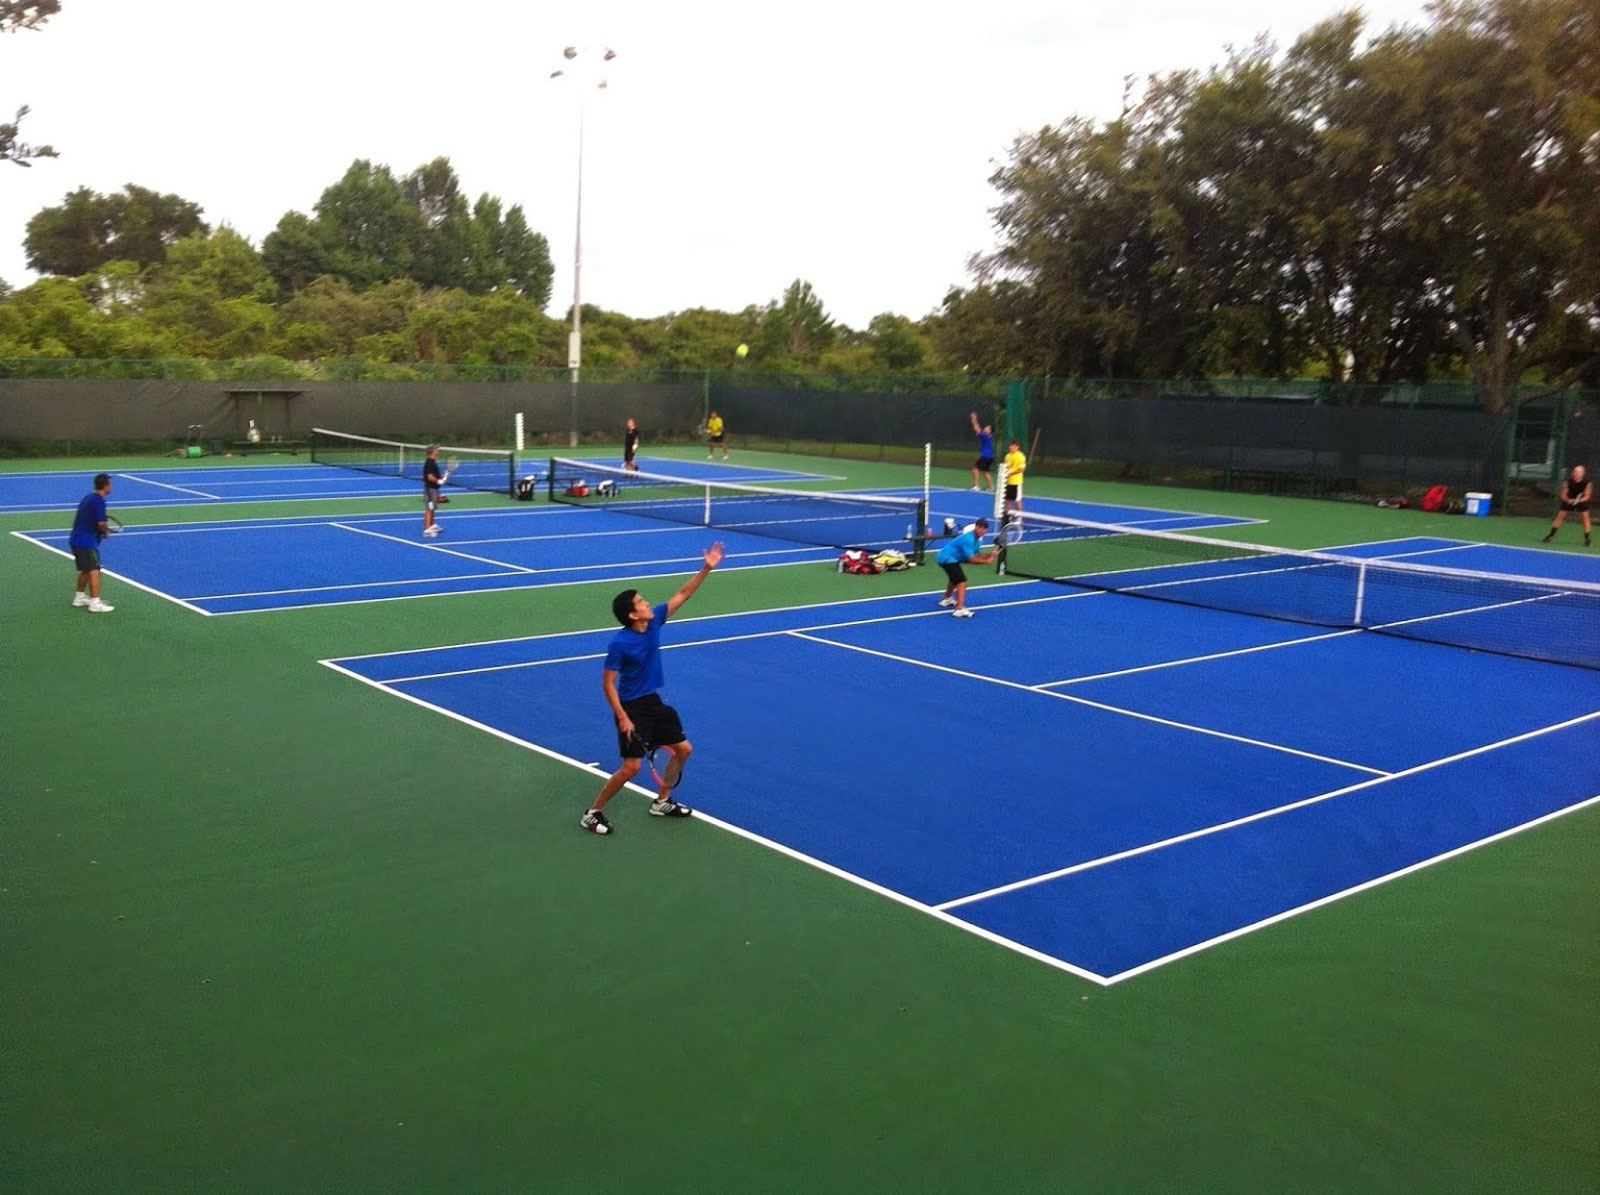 Lake_Cane_Tennis_Center_orlando_Disney - disney